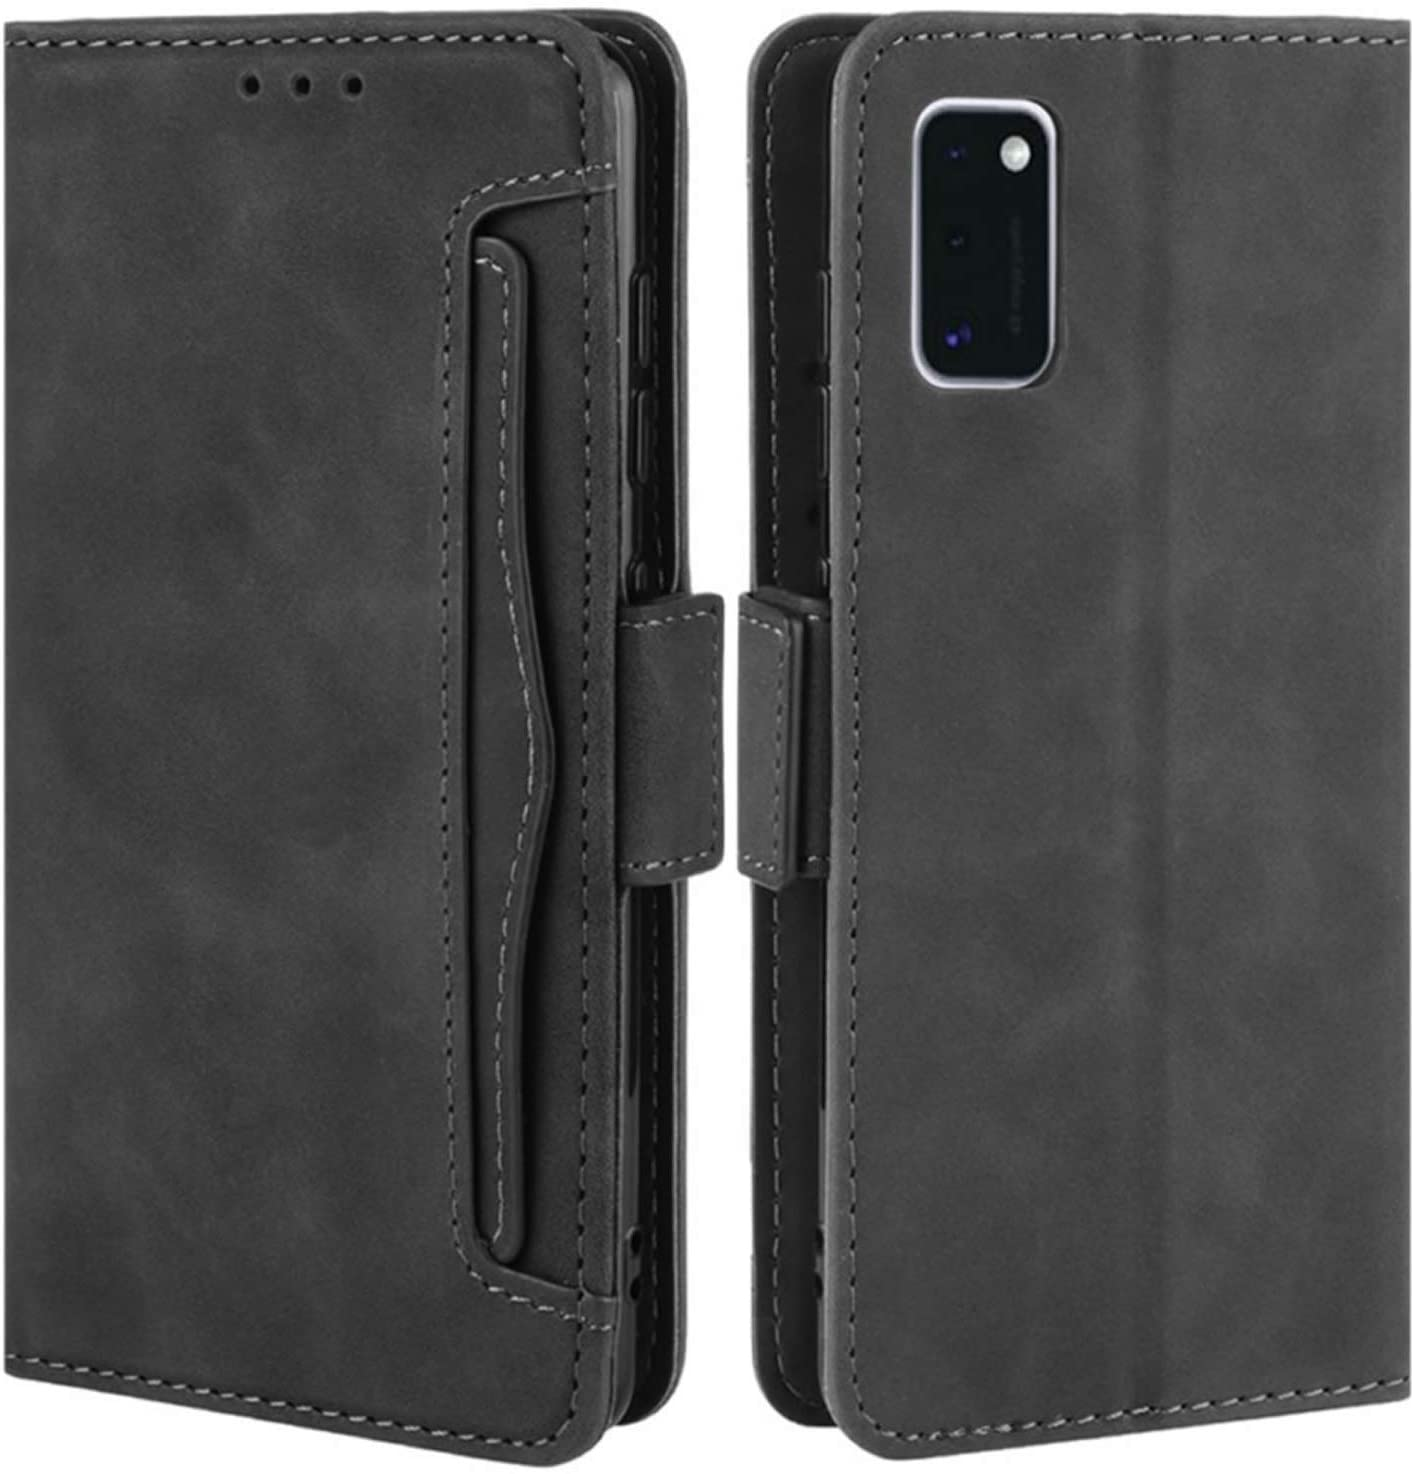 HualuBro Samsung Galaxy A31 Case, Magnetic Full Body Protection Shockproof Flip Leather Wallet Case Cover with Card Slot Holder for Samsung Galaxy A31 Phone Case (Black)